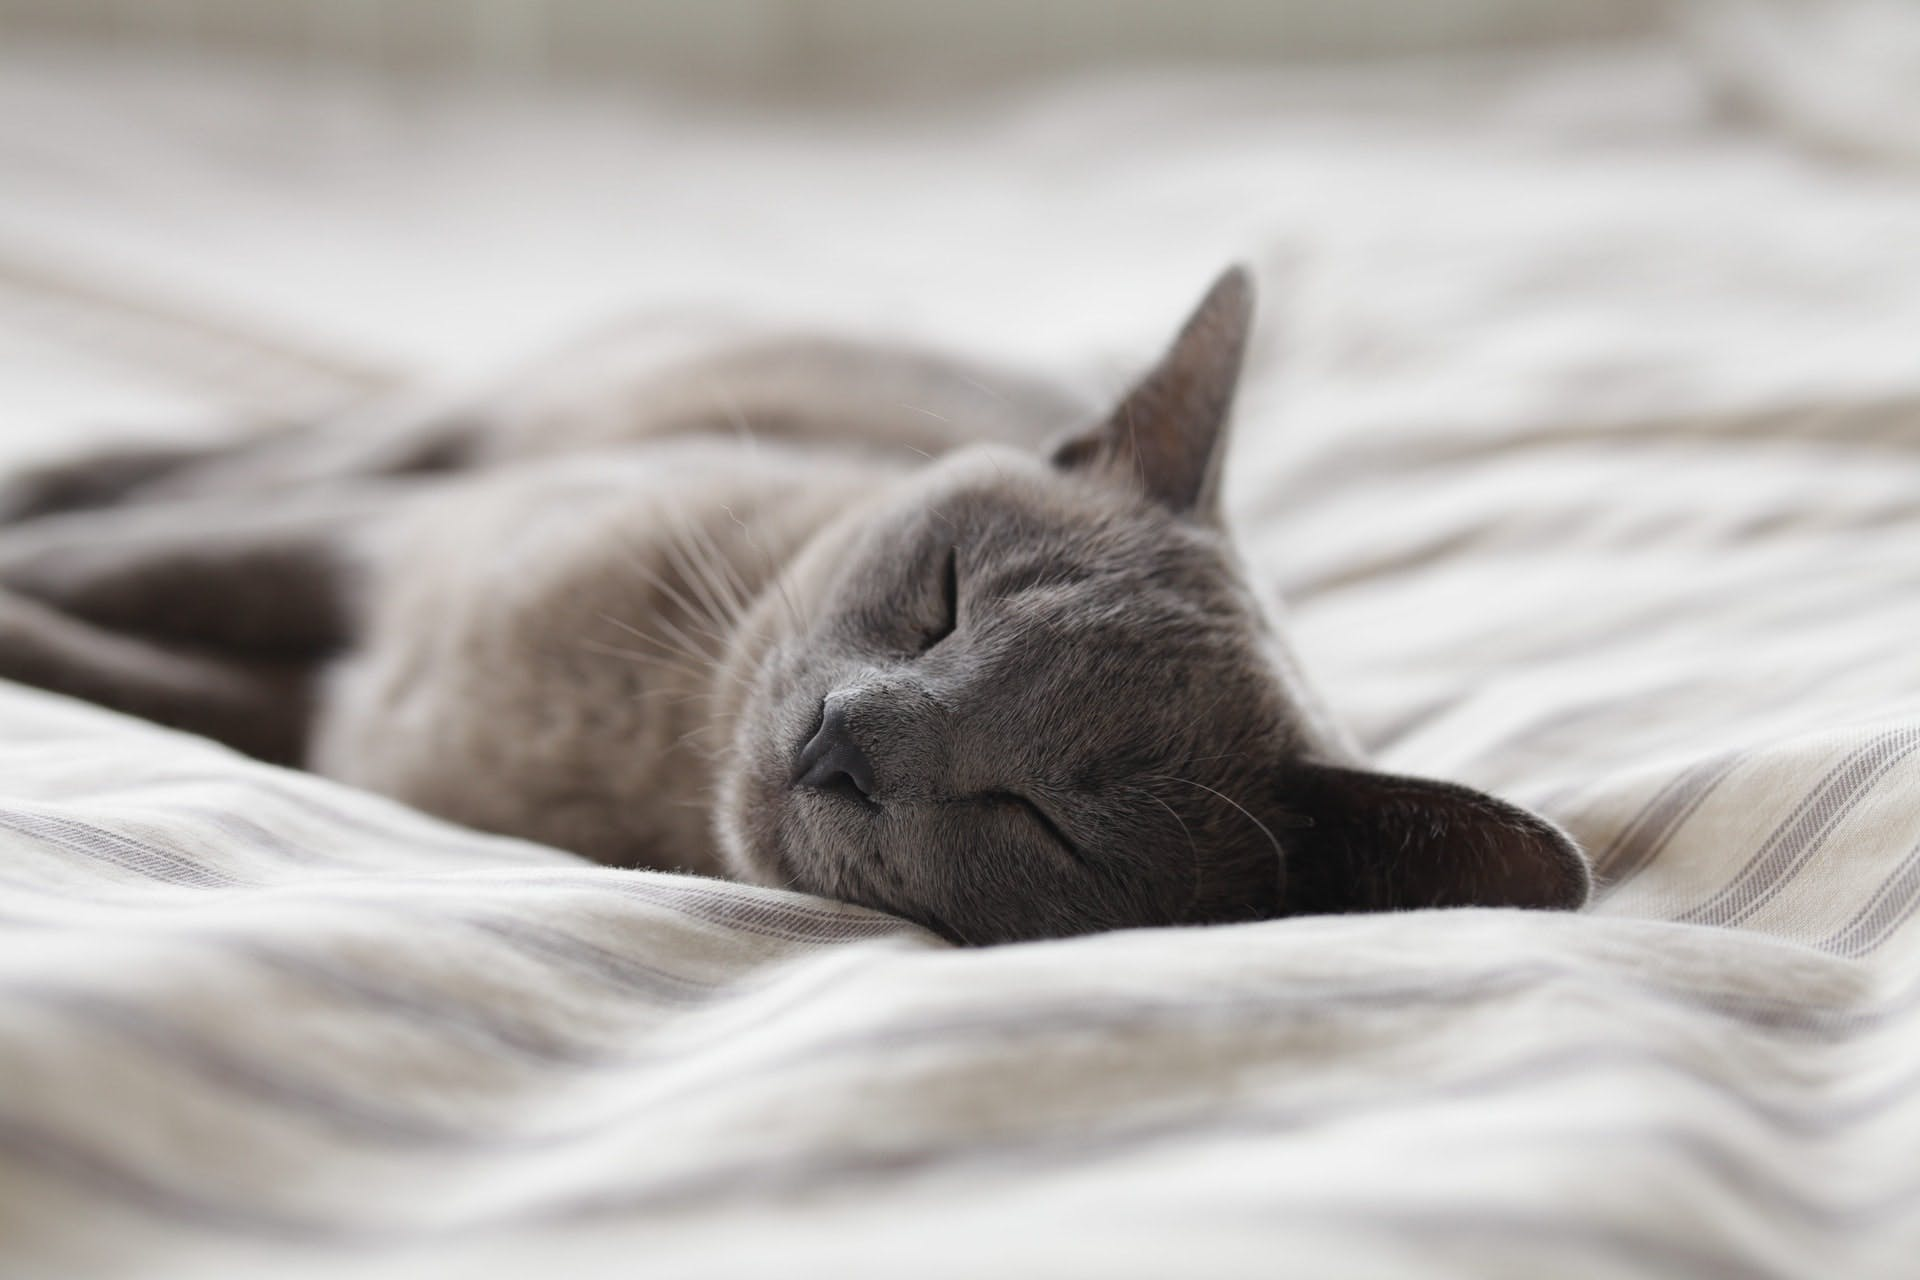 a cat napping